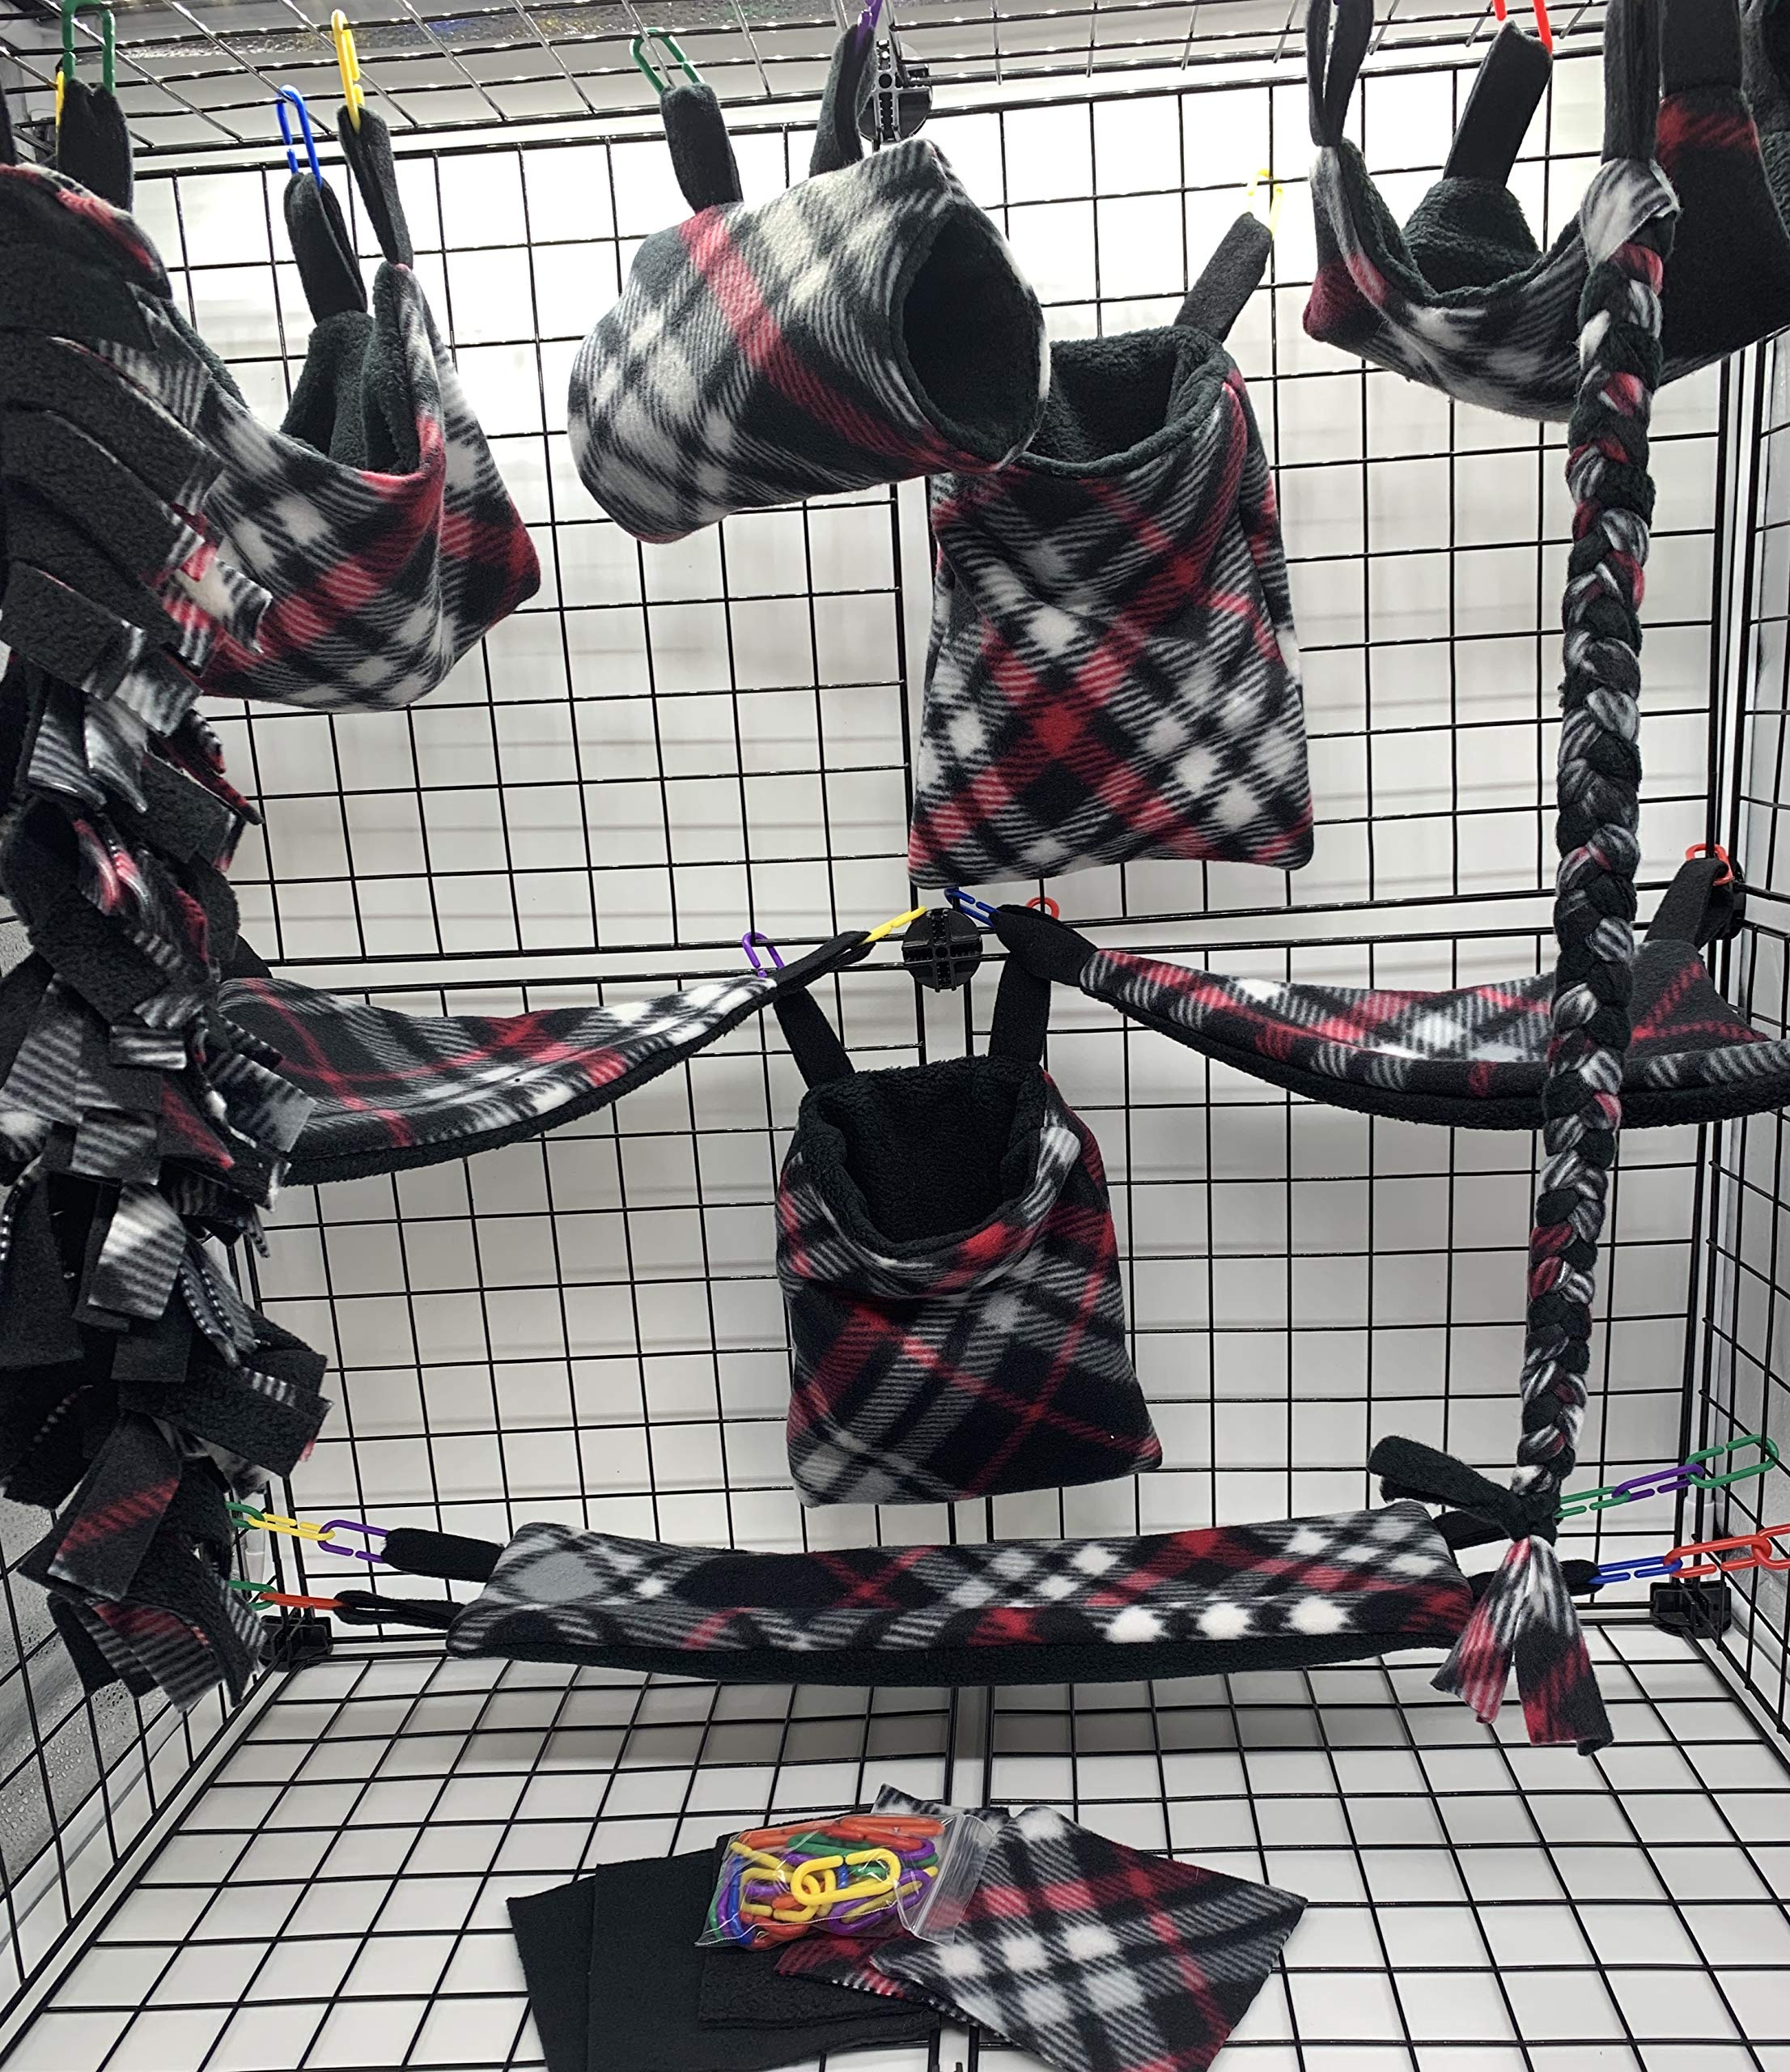 The Kozy Kritter 15 Piece Red Black and White Sugar Glider Cage Set by The Kozy Kritter